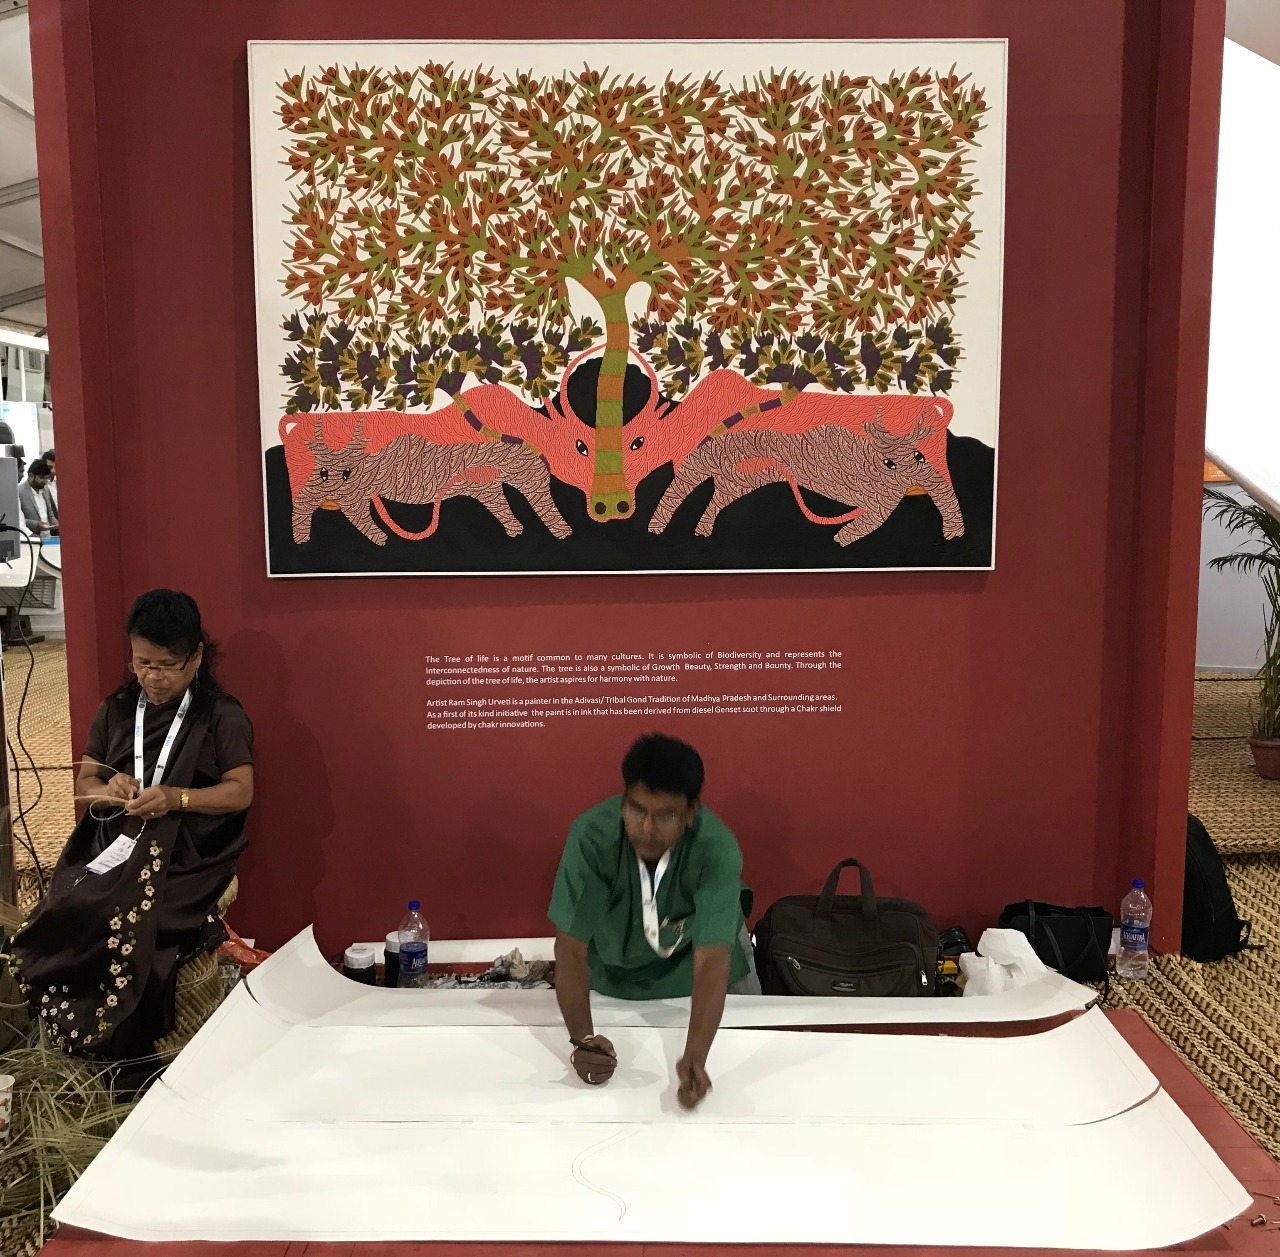 Ram Singh Urveti is a painter in the Adivasi/tribal Gond tradition of Madhya Pradesh. Photo Credit: Navraj Bhatia